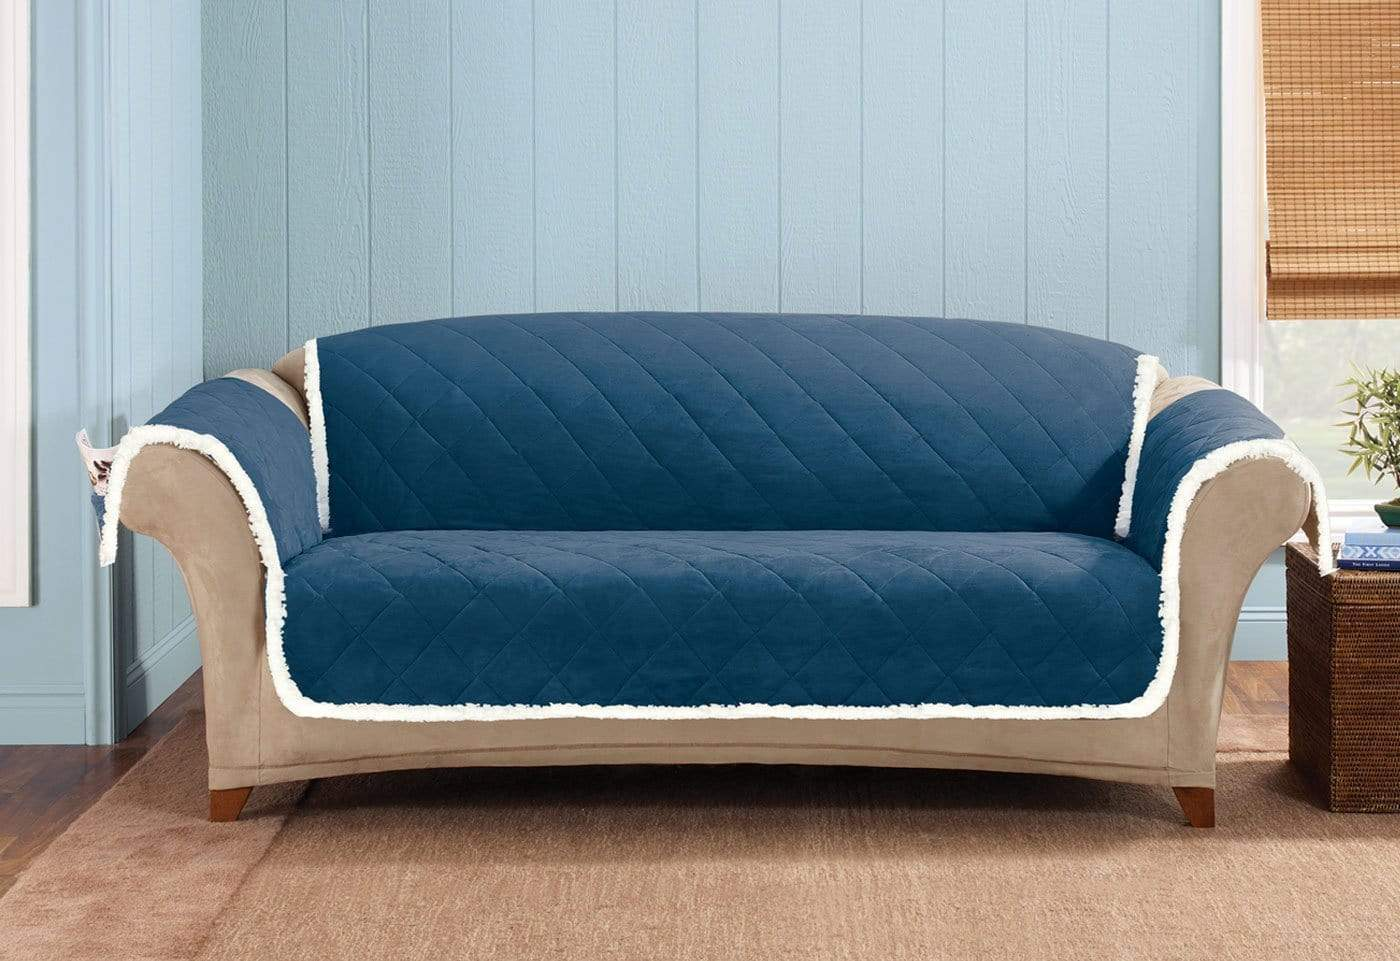 Soft Suede & Sherpa Sofa Furniture Cover 100% Polyester Pet Furniture Cover Machine Washable - Sofa / Navy